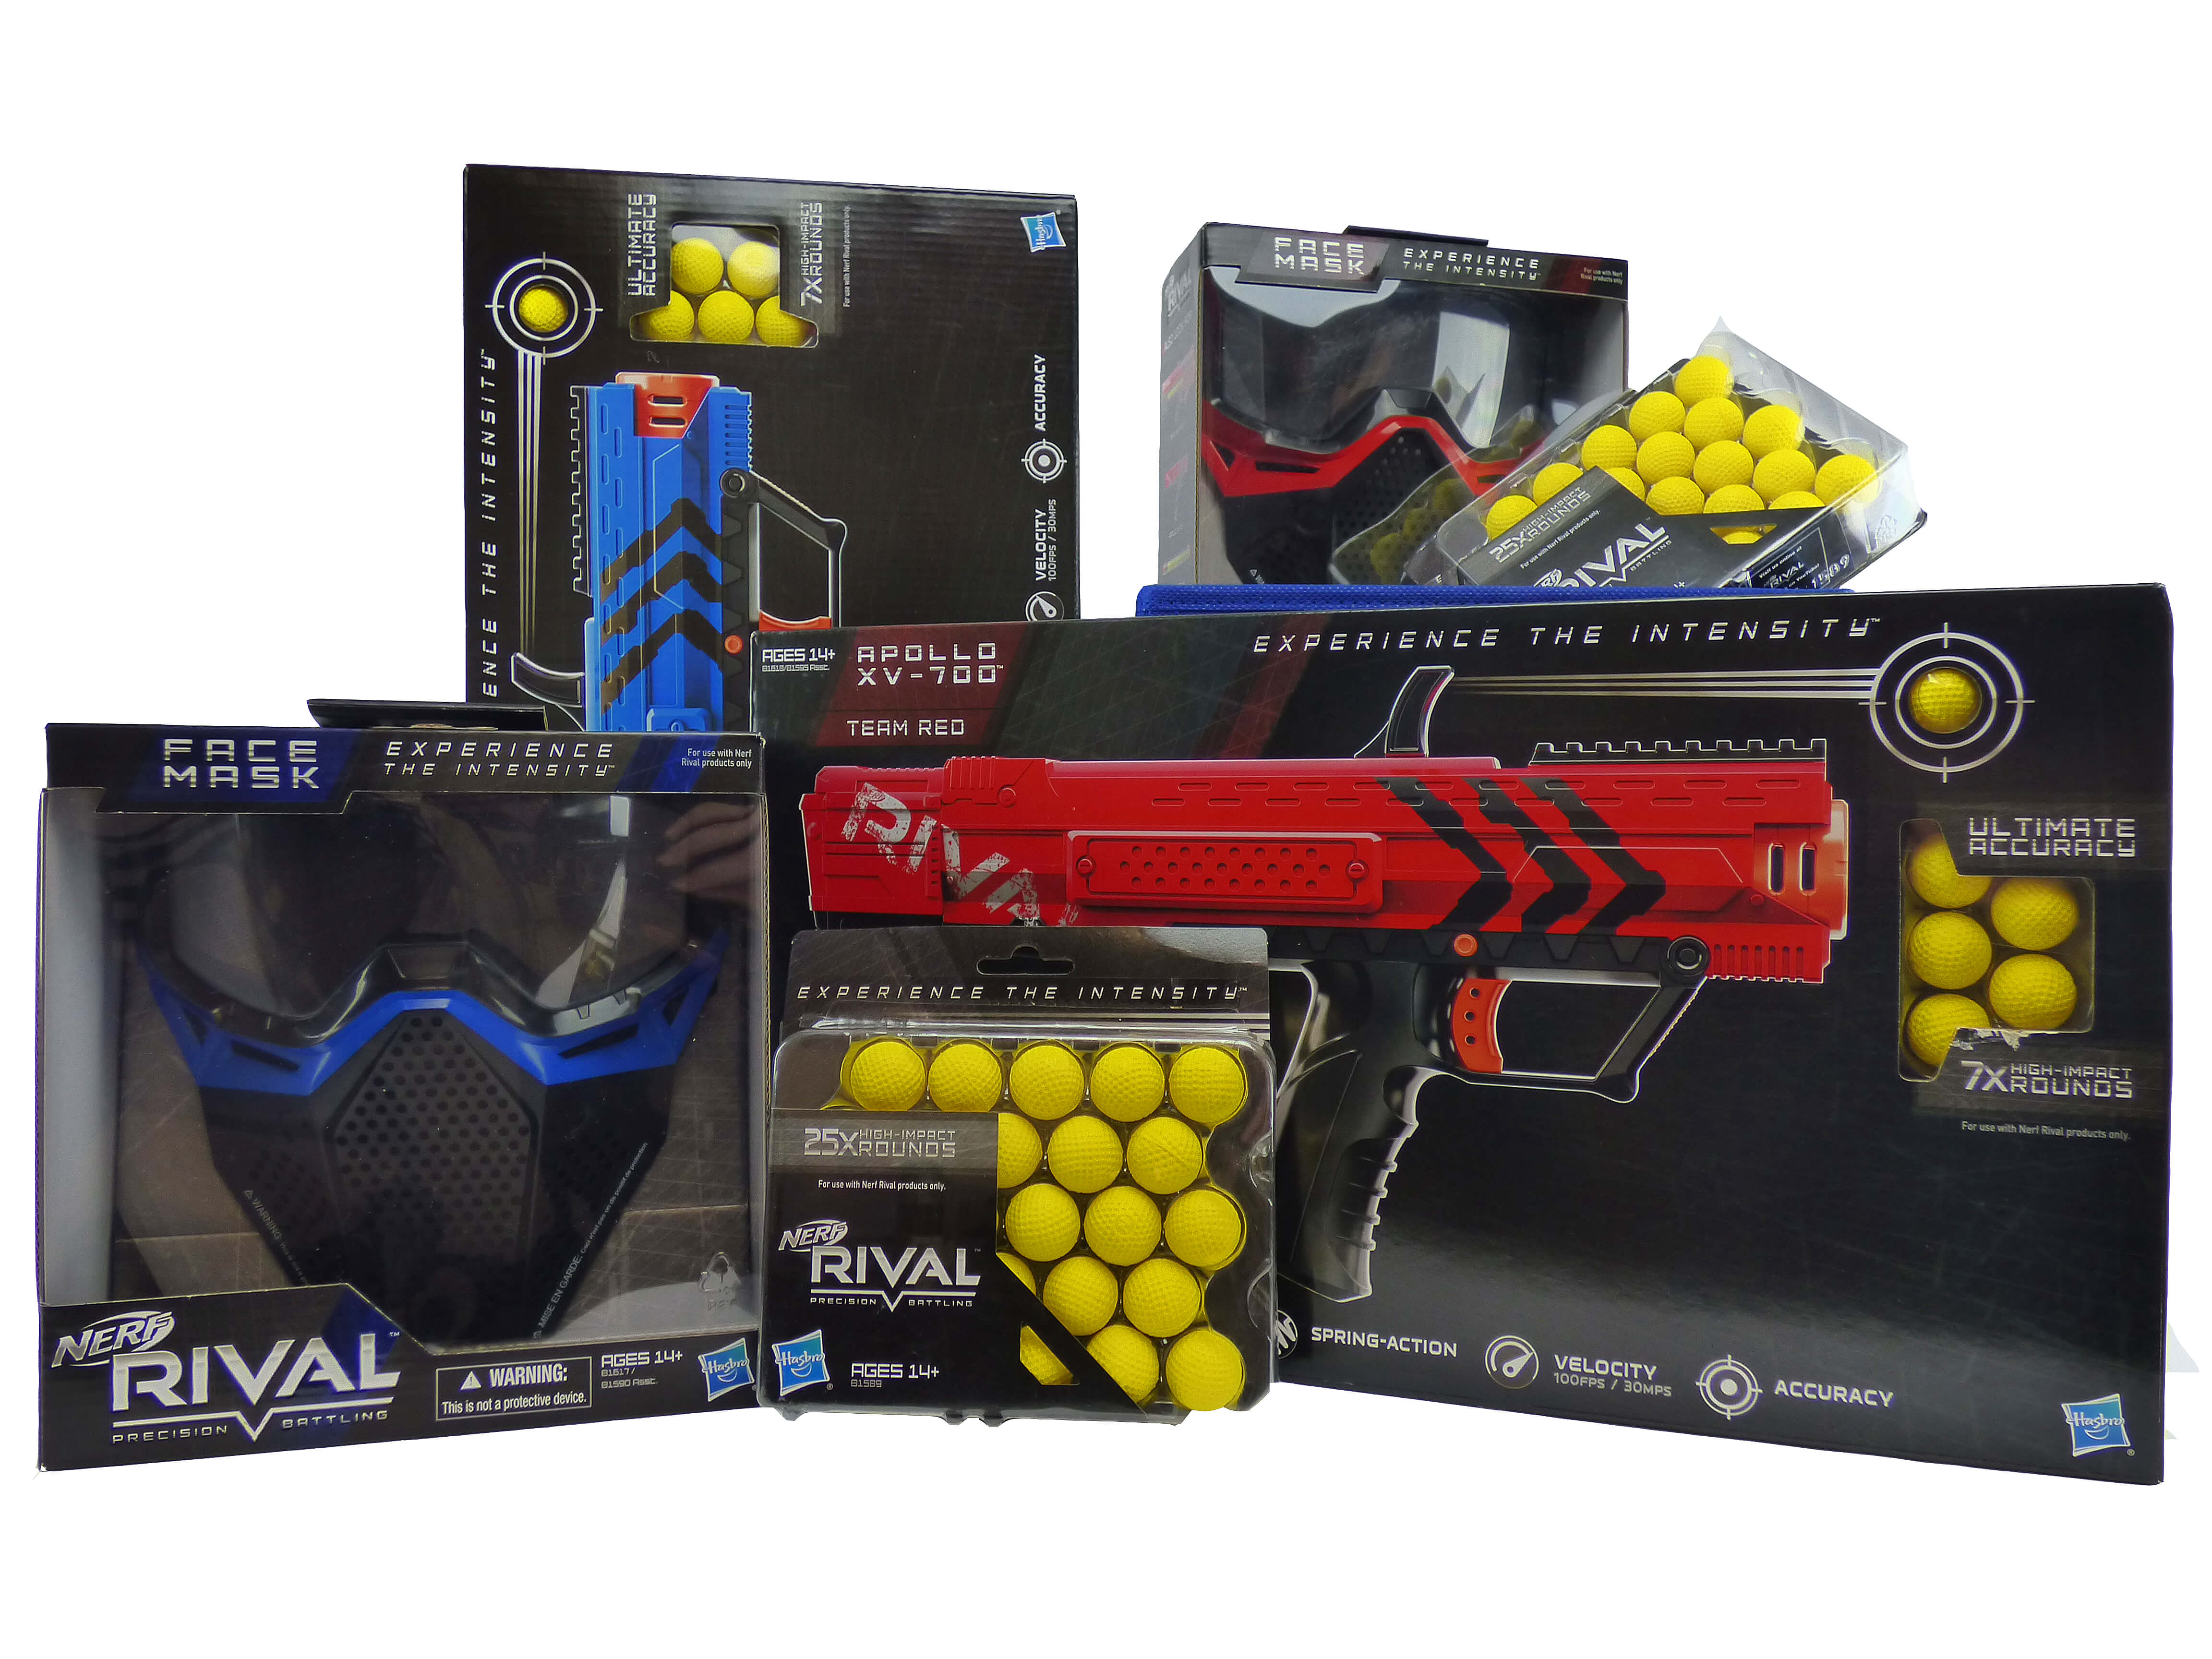 Nerf crate